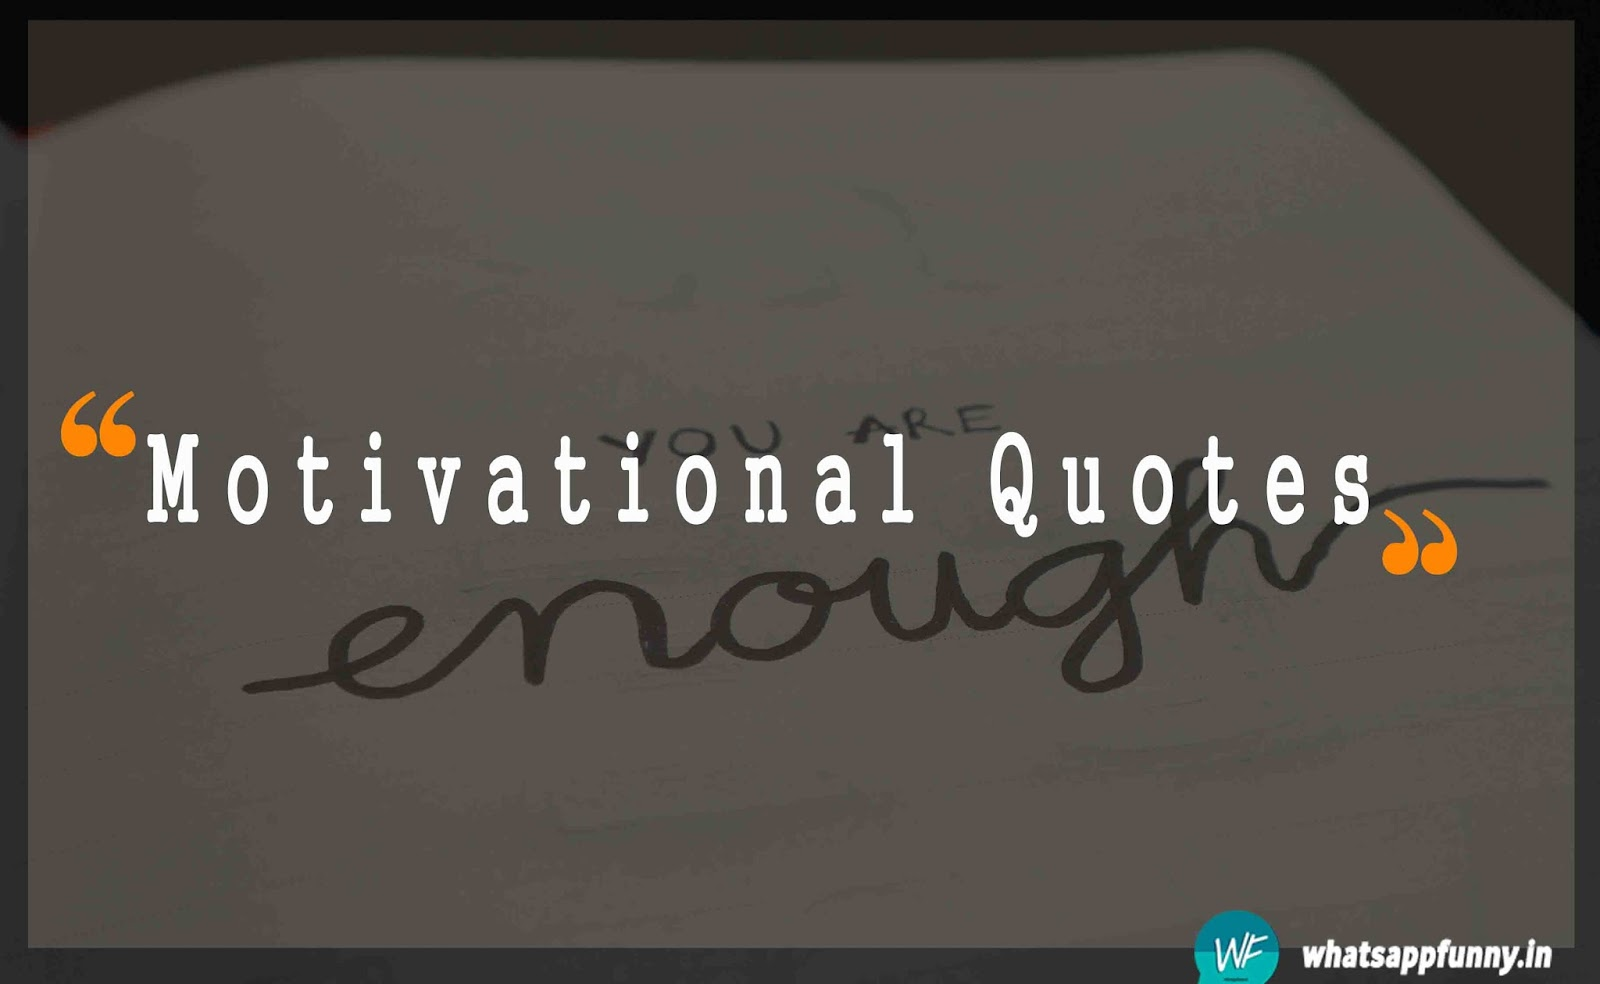 One line quotes, motivation, motivational, encouraging quotes.